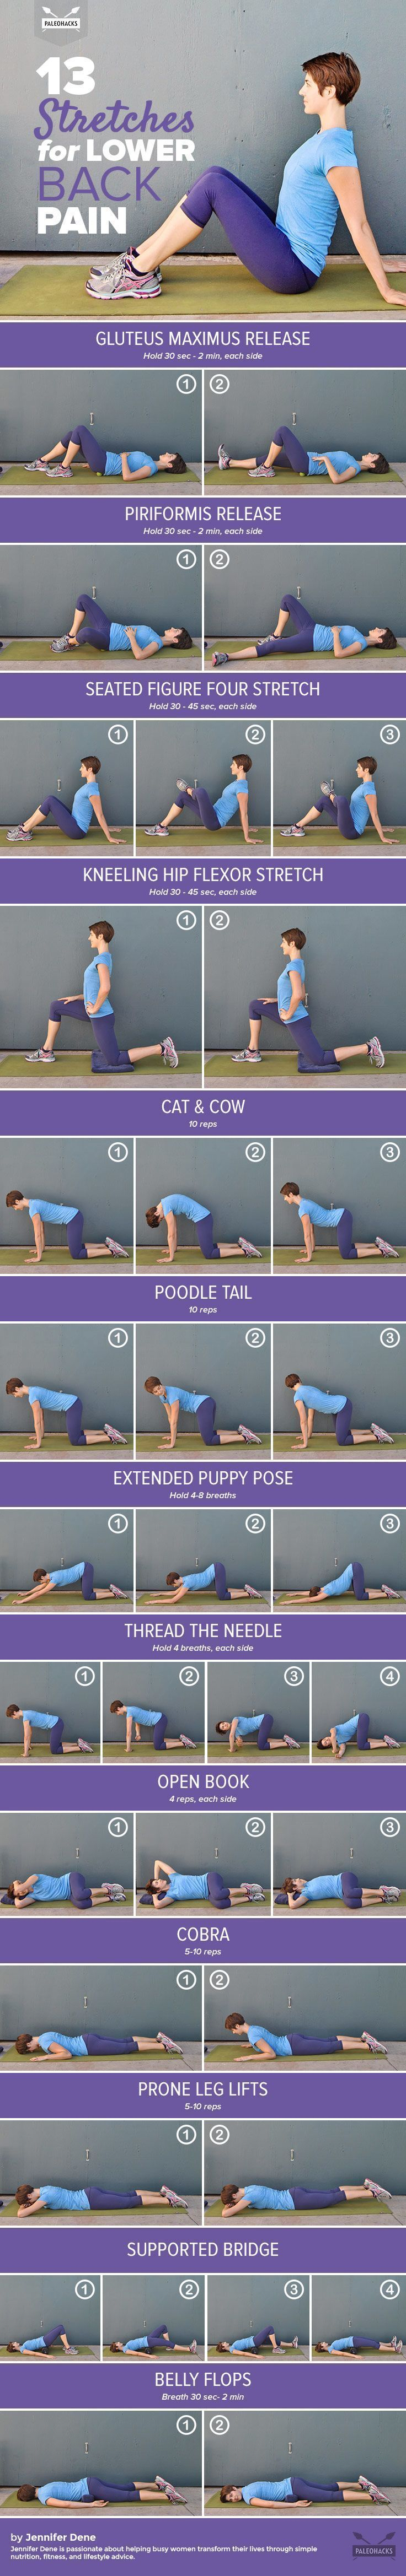 Relieve your lower back pain with these gentle yet effective stretches. #HipFlexorsRelief